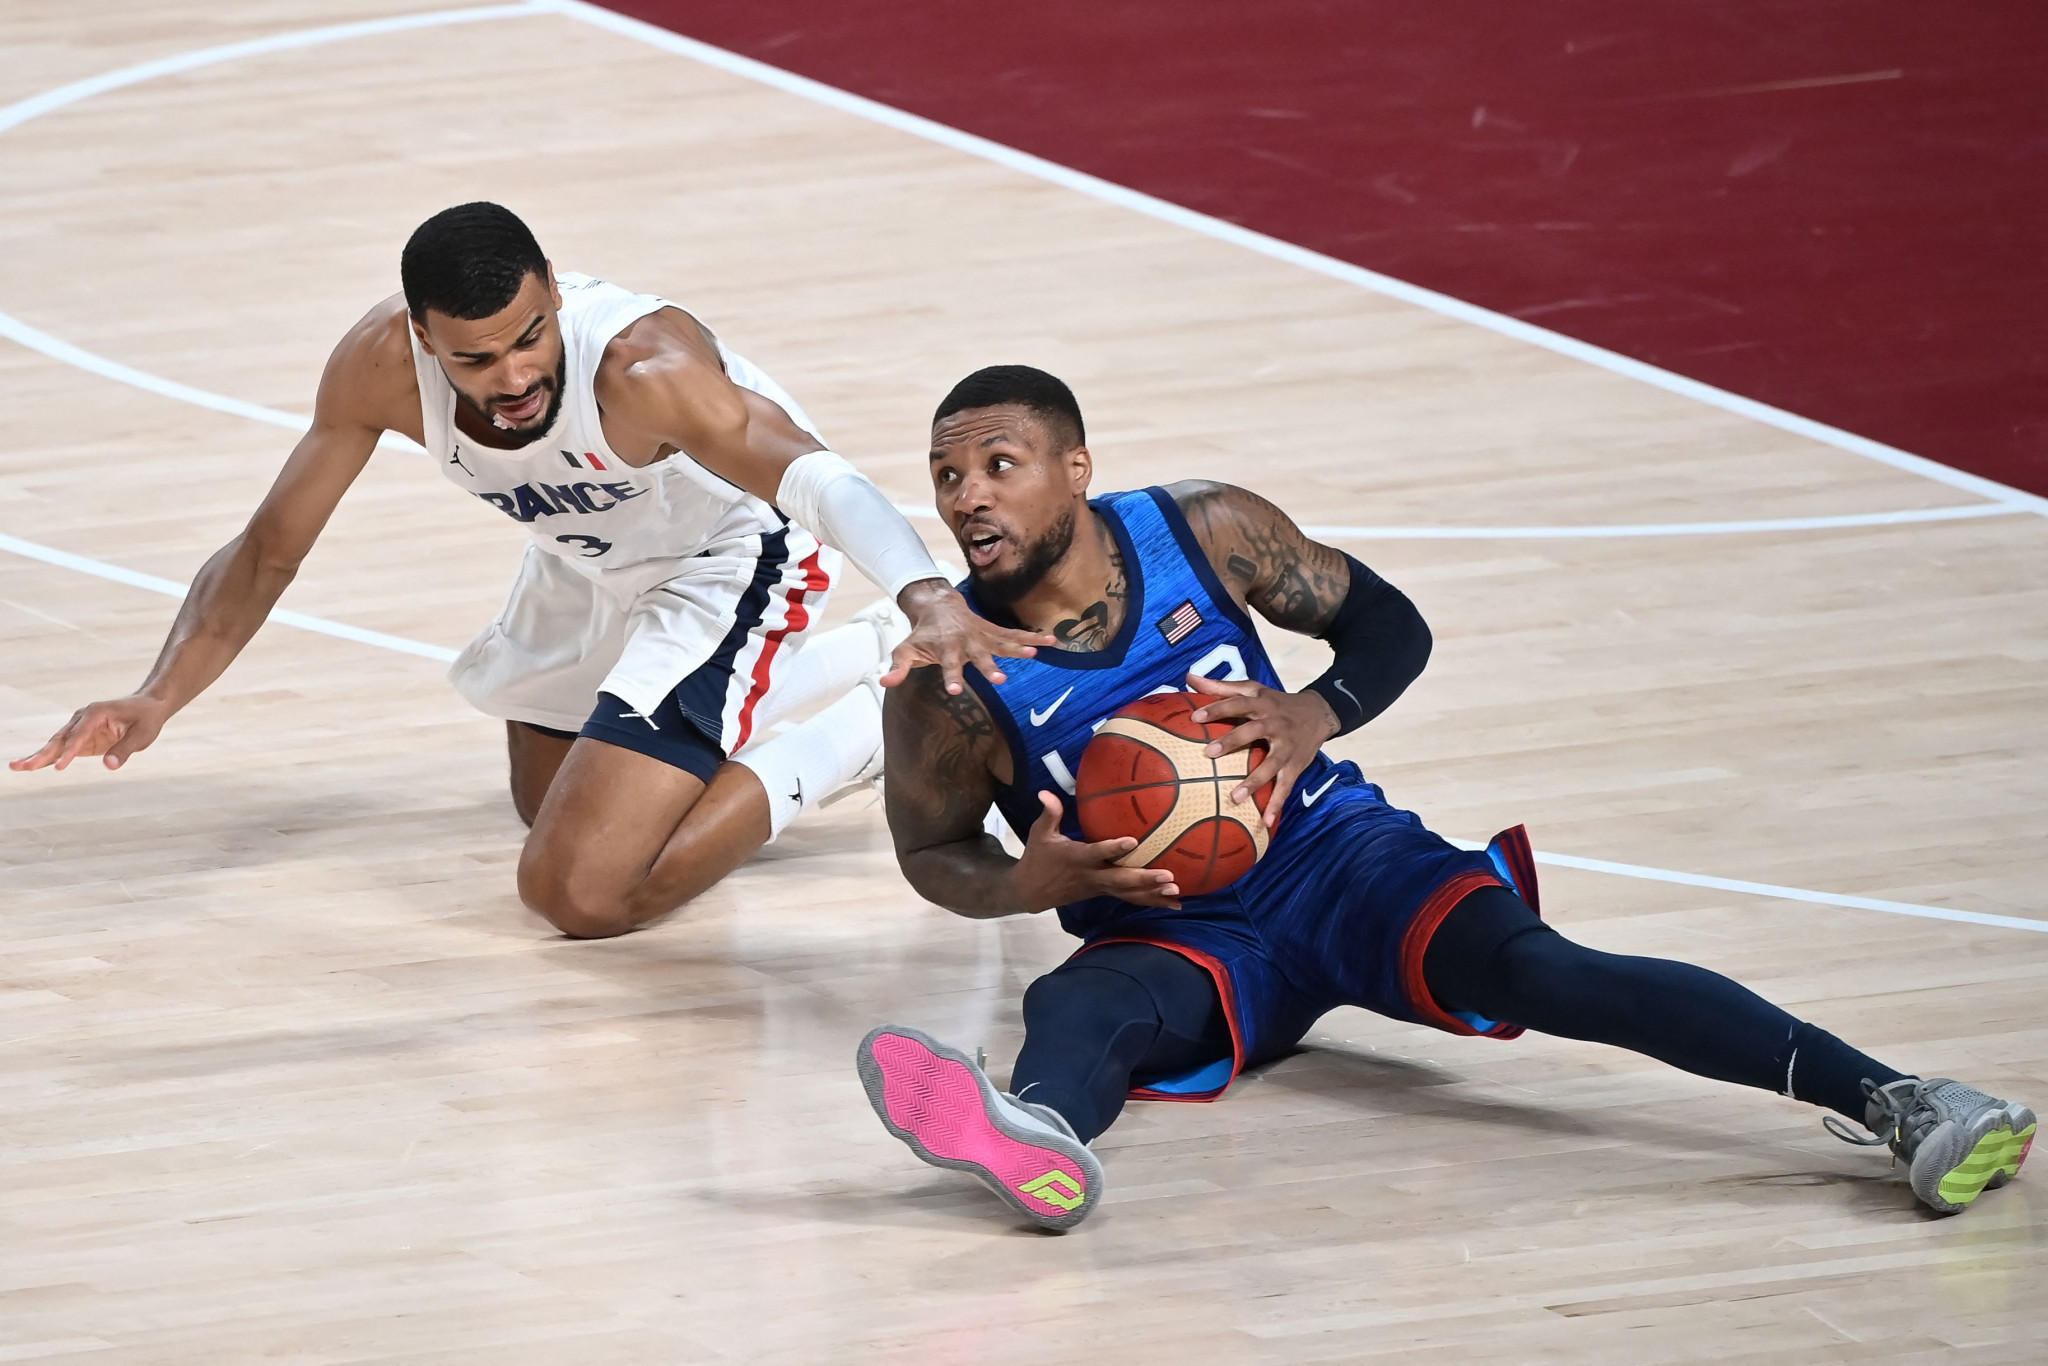 There was also an upset in the men's basketball as the United States lost an Olympic match for the first time since 2004, coming up short against France - the same team who eliminated the Americans at the 2019 World Cup ©Getty Images